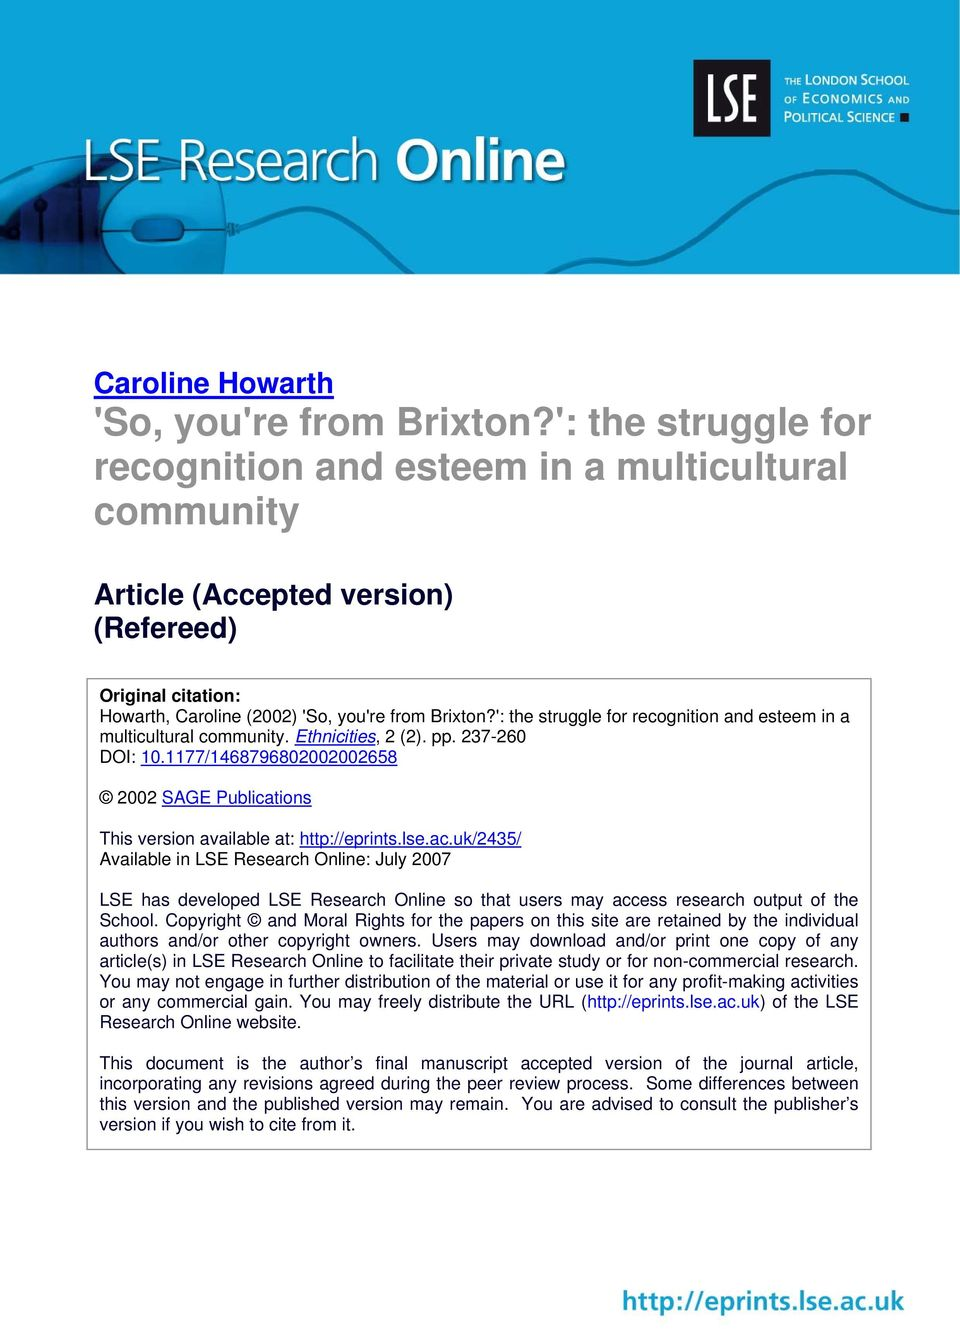 ': the struggle for recognition and esteem in a multicultural community. Ethnicities, 2 (2). pp. 237-260 DOI: 10.